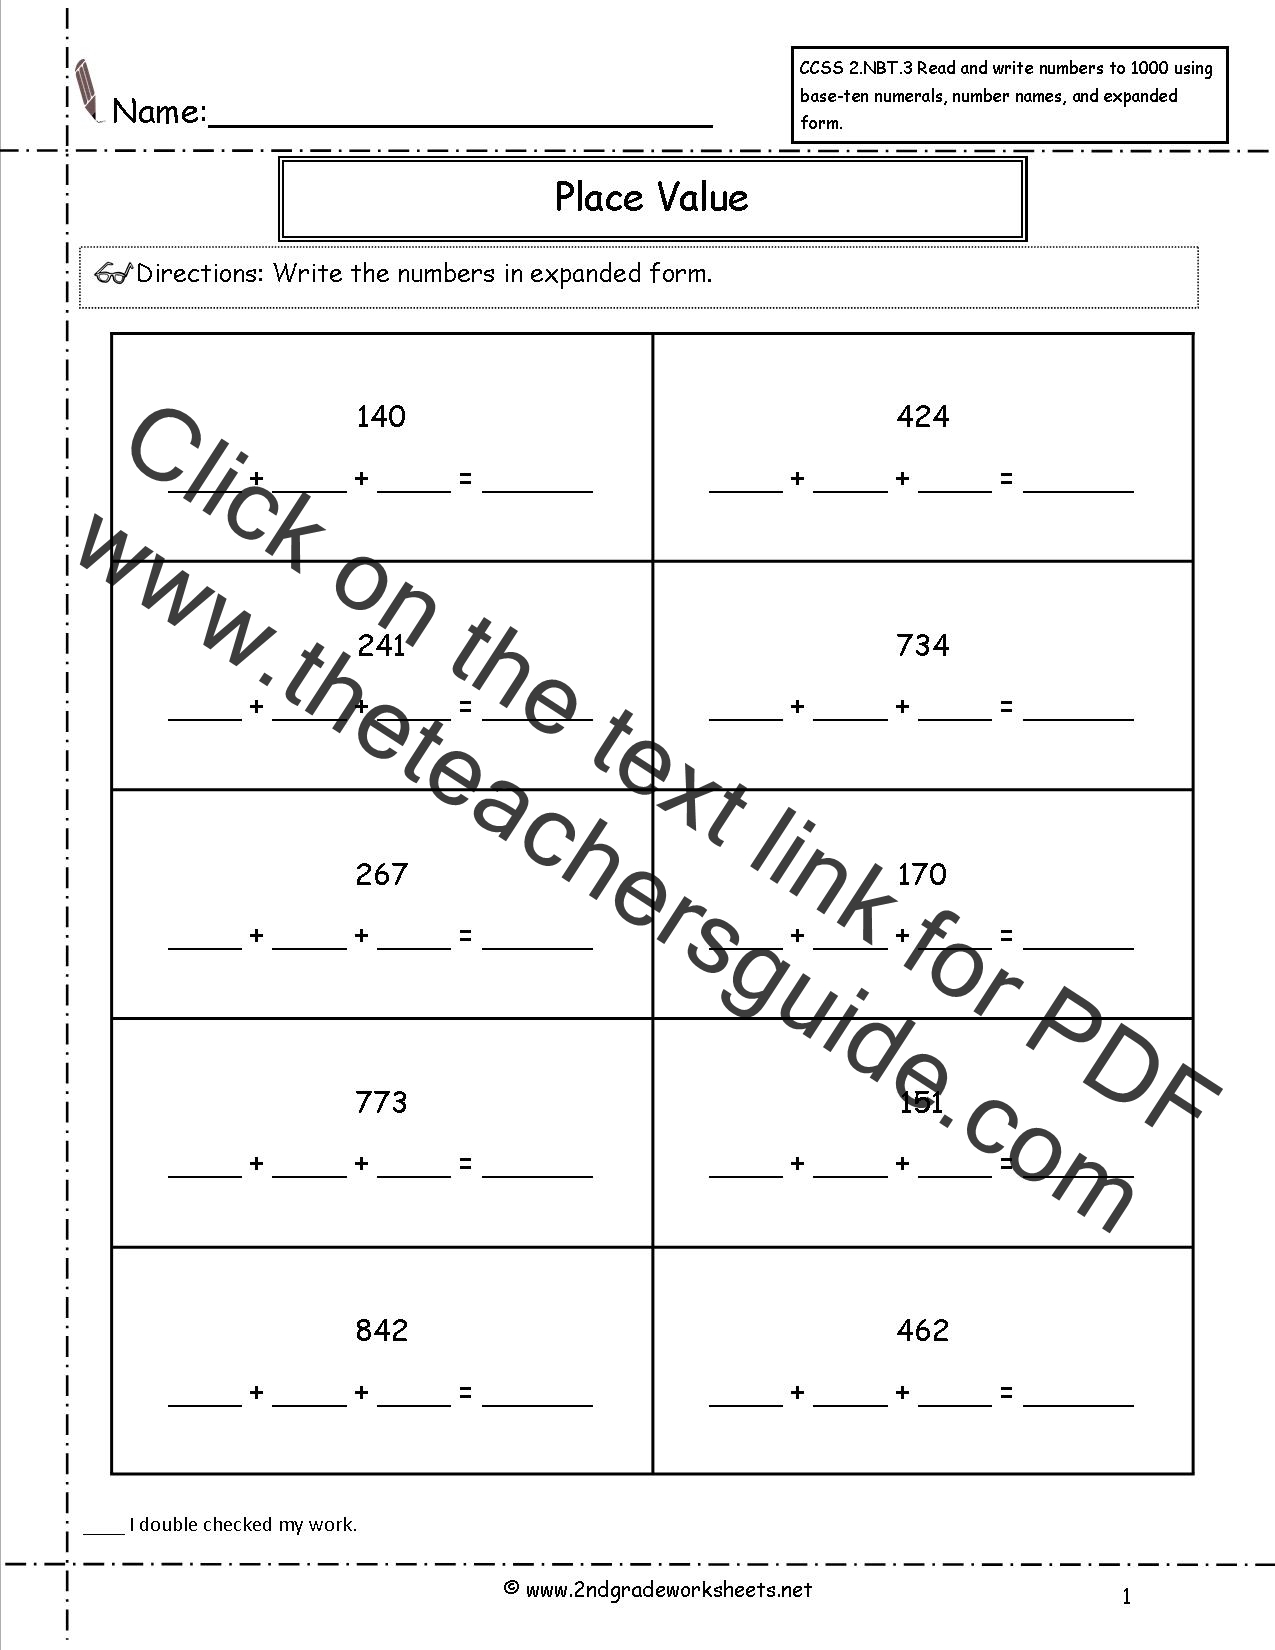 CCSS 2NBT3 Worksheets Place Value WorksheetsRead and Write Numbers – Expanded Form Worksheets